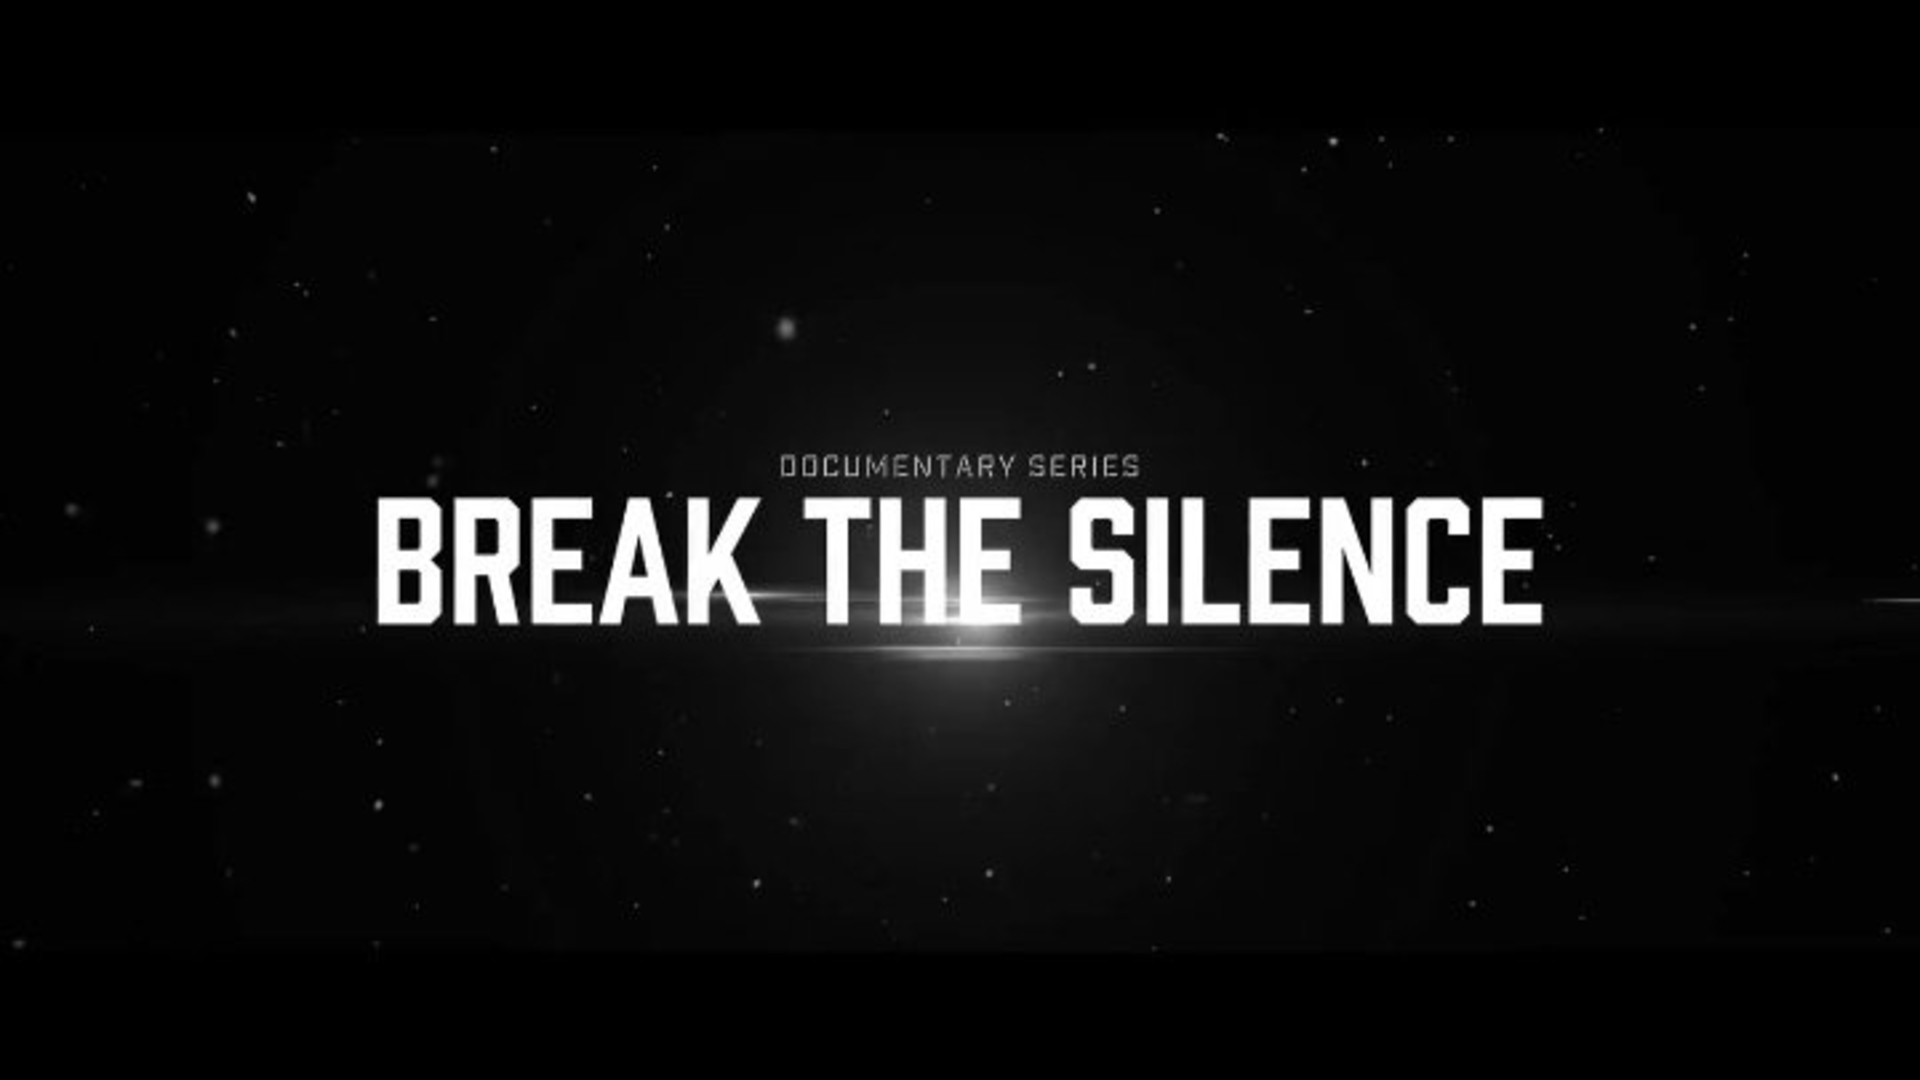 Break the Silence: Docu-Series